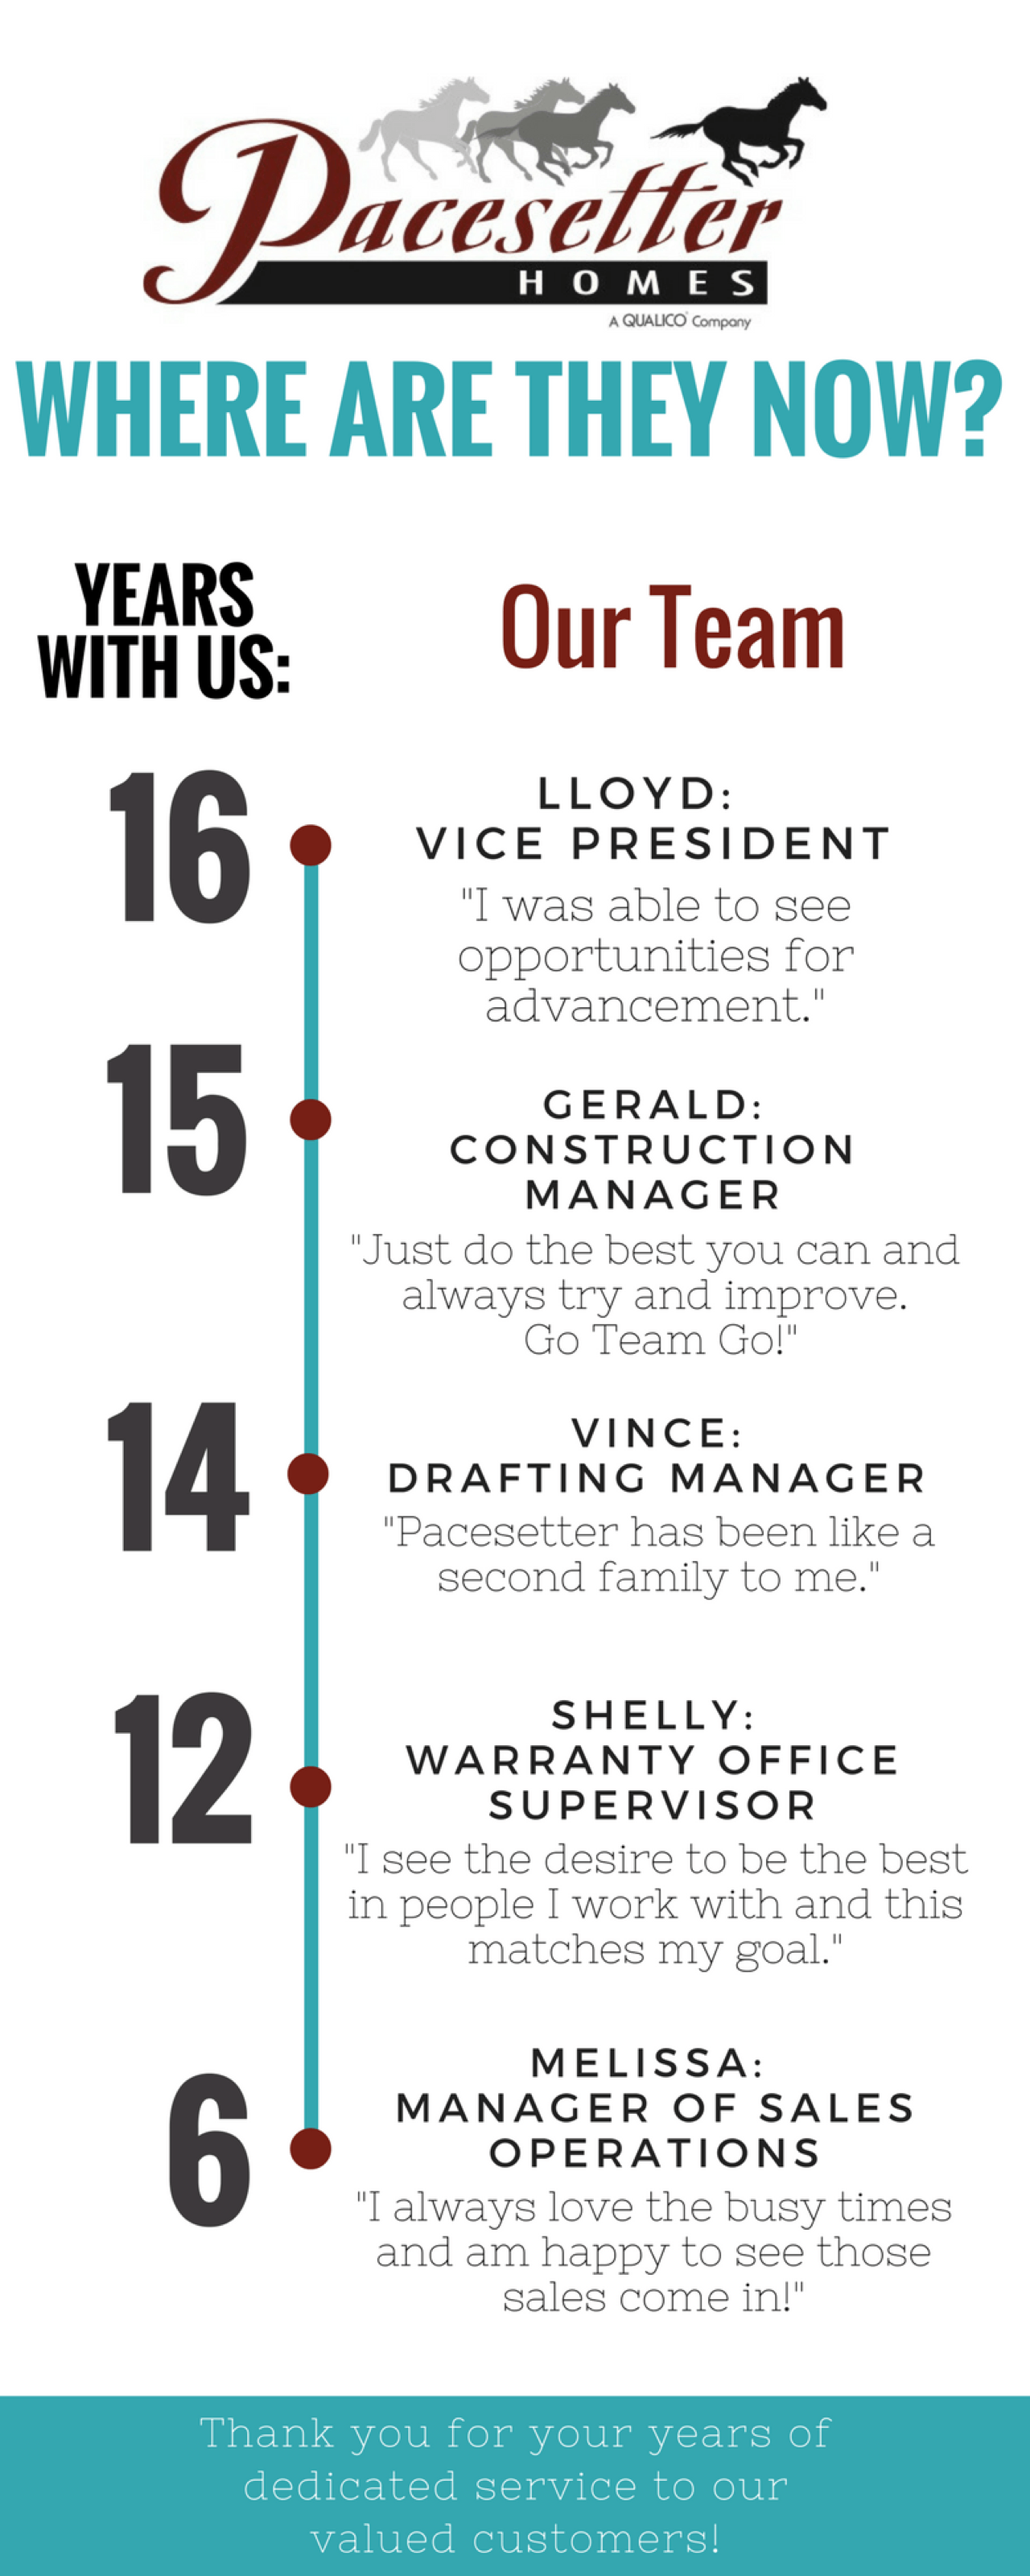 pacesetter-team-where-are-they-now-infographic-featured-image.png